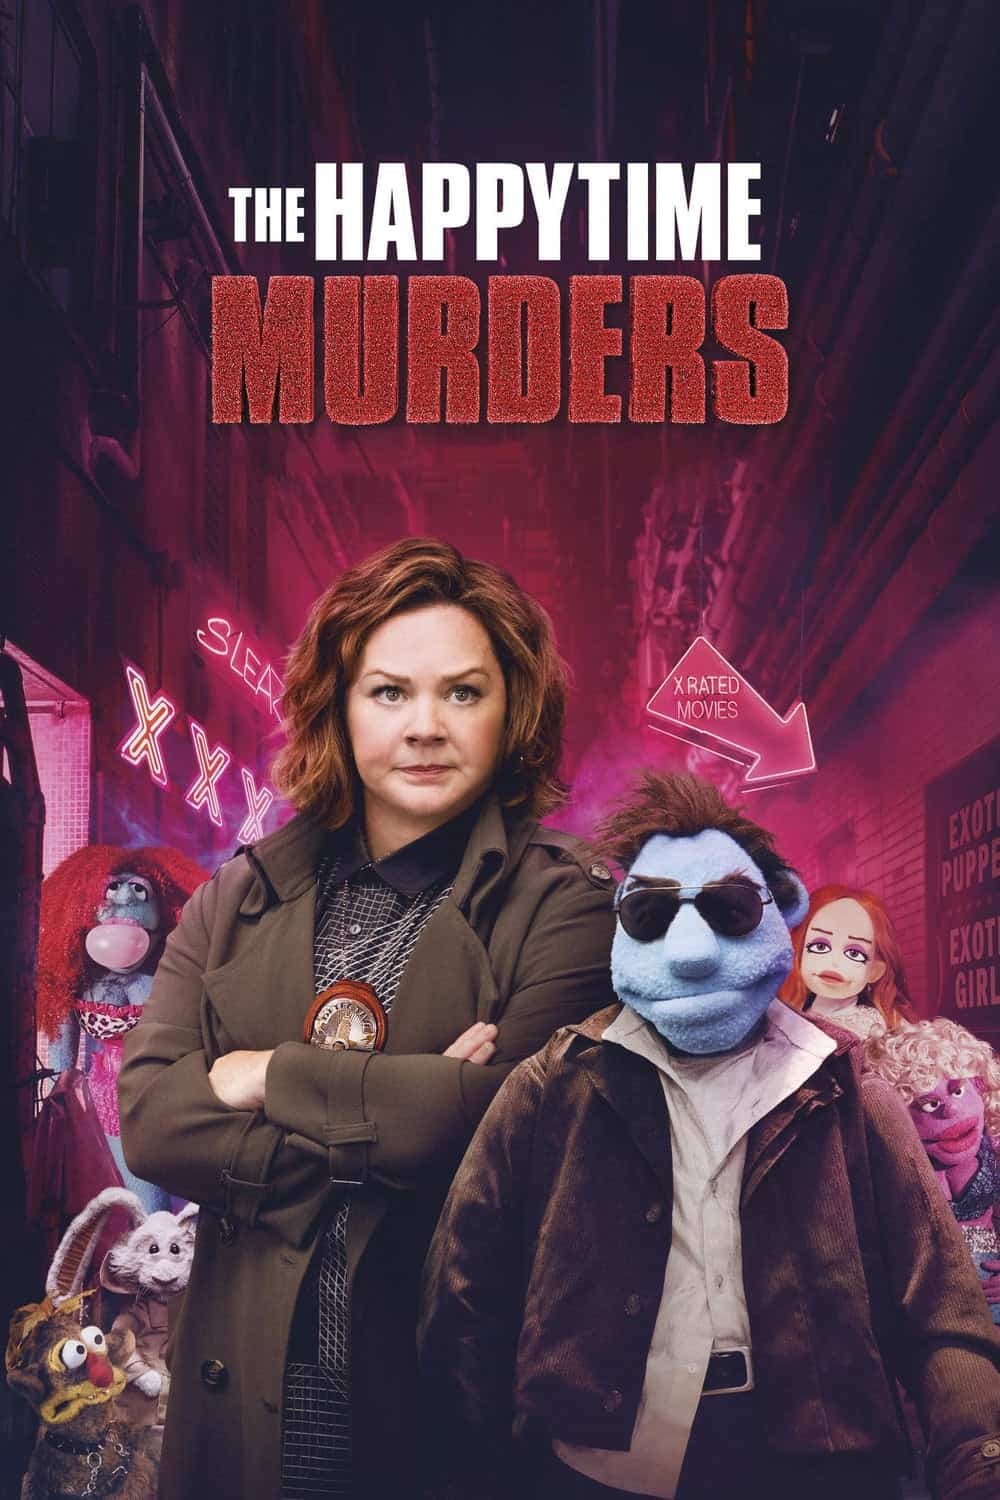 The Happytime Murders, 2018